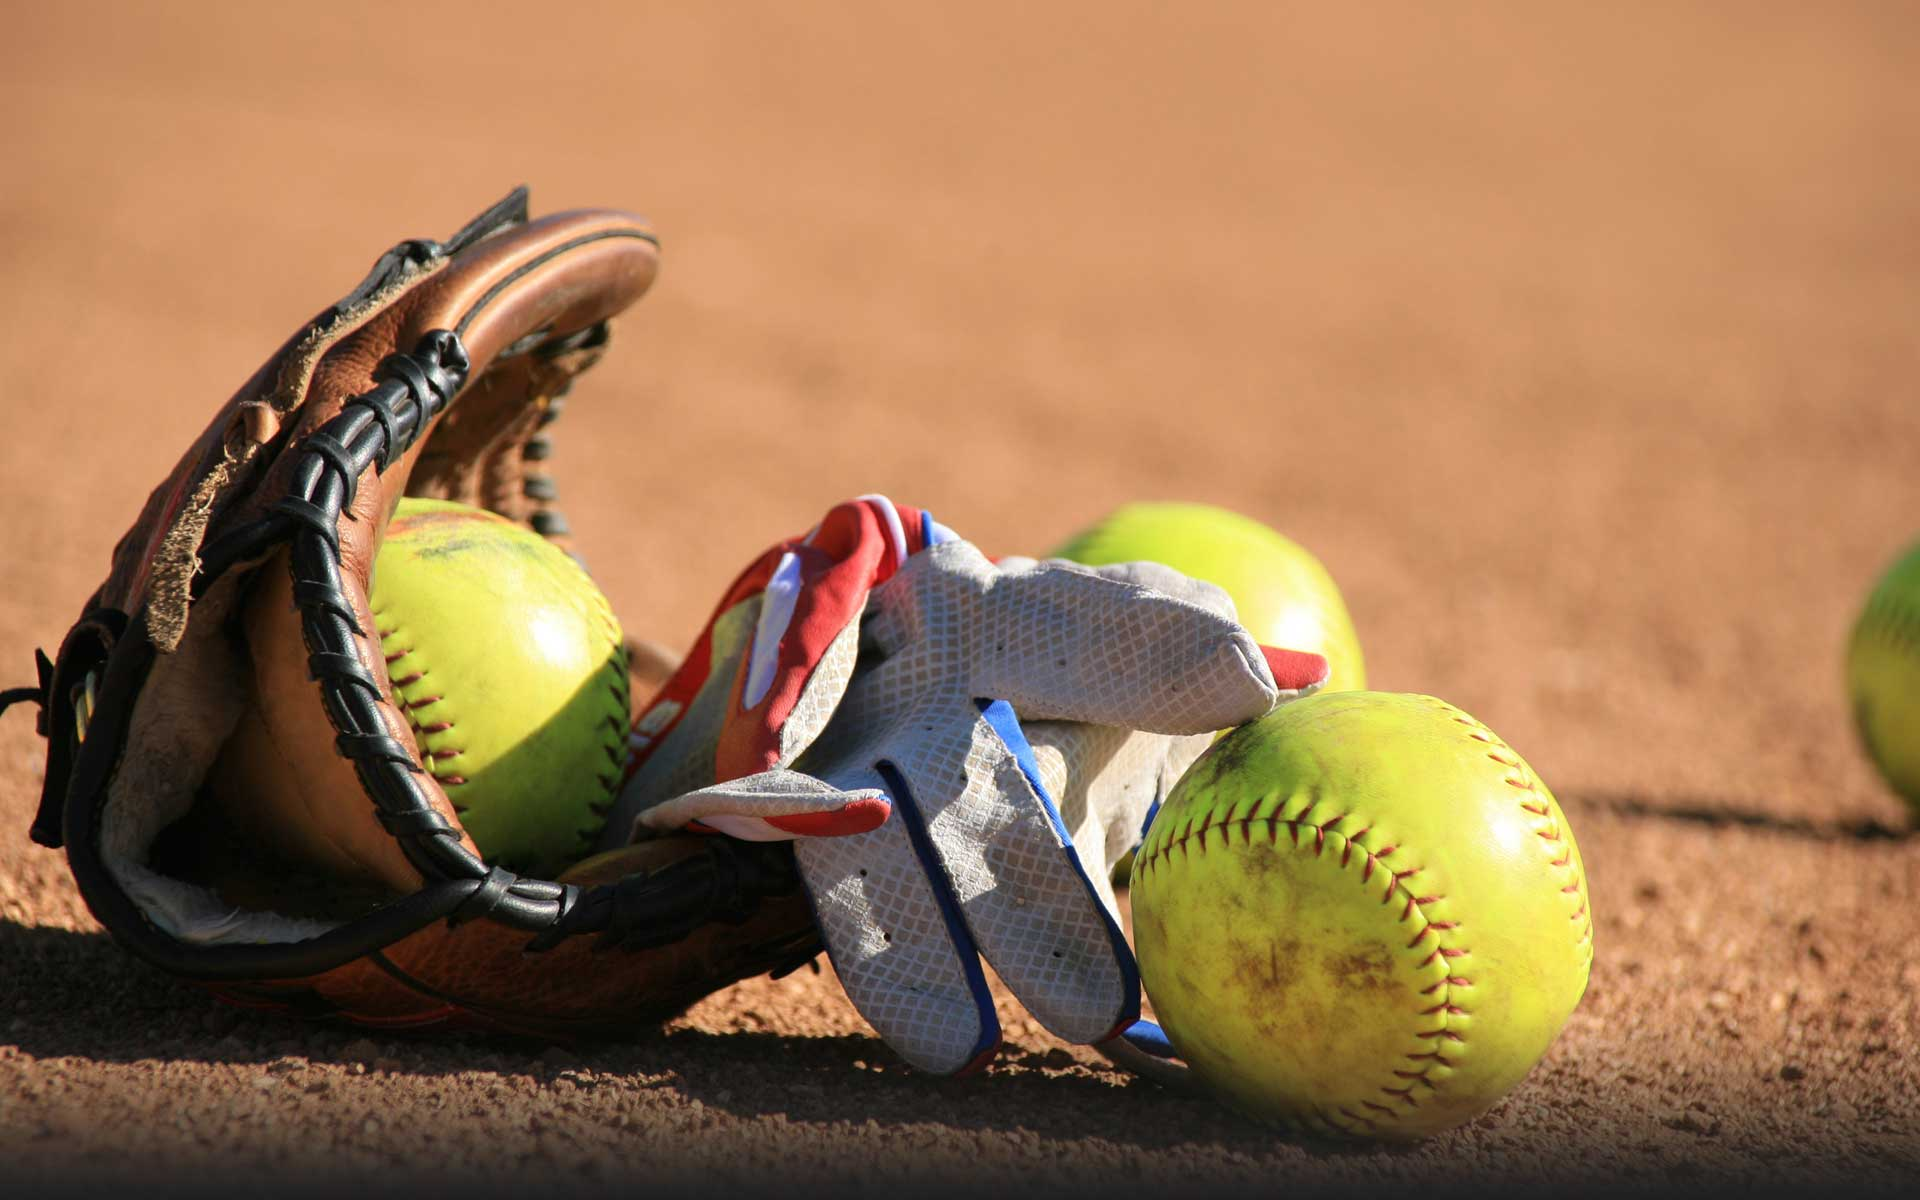 Softball Wallpaper